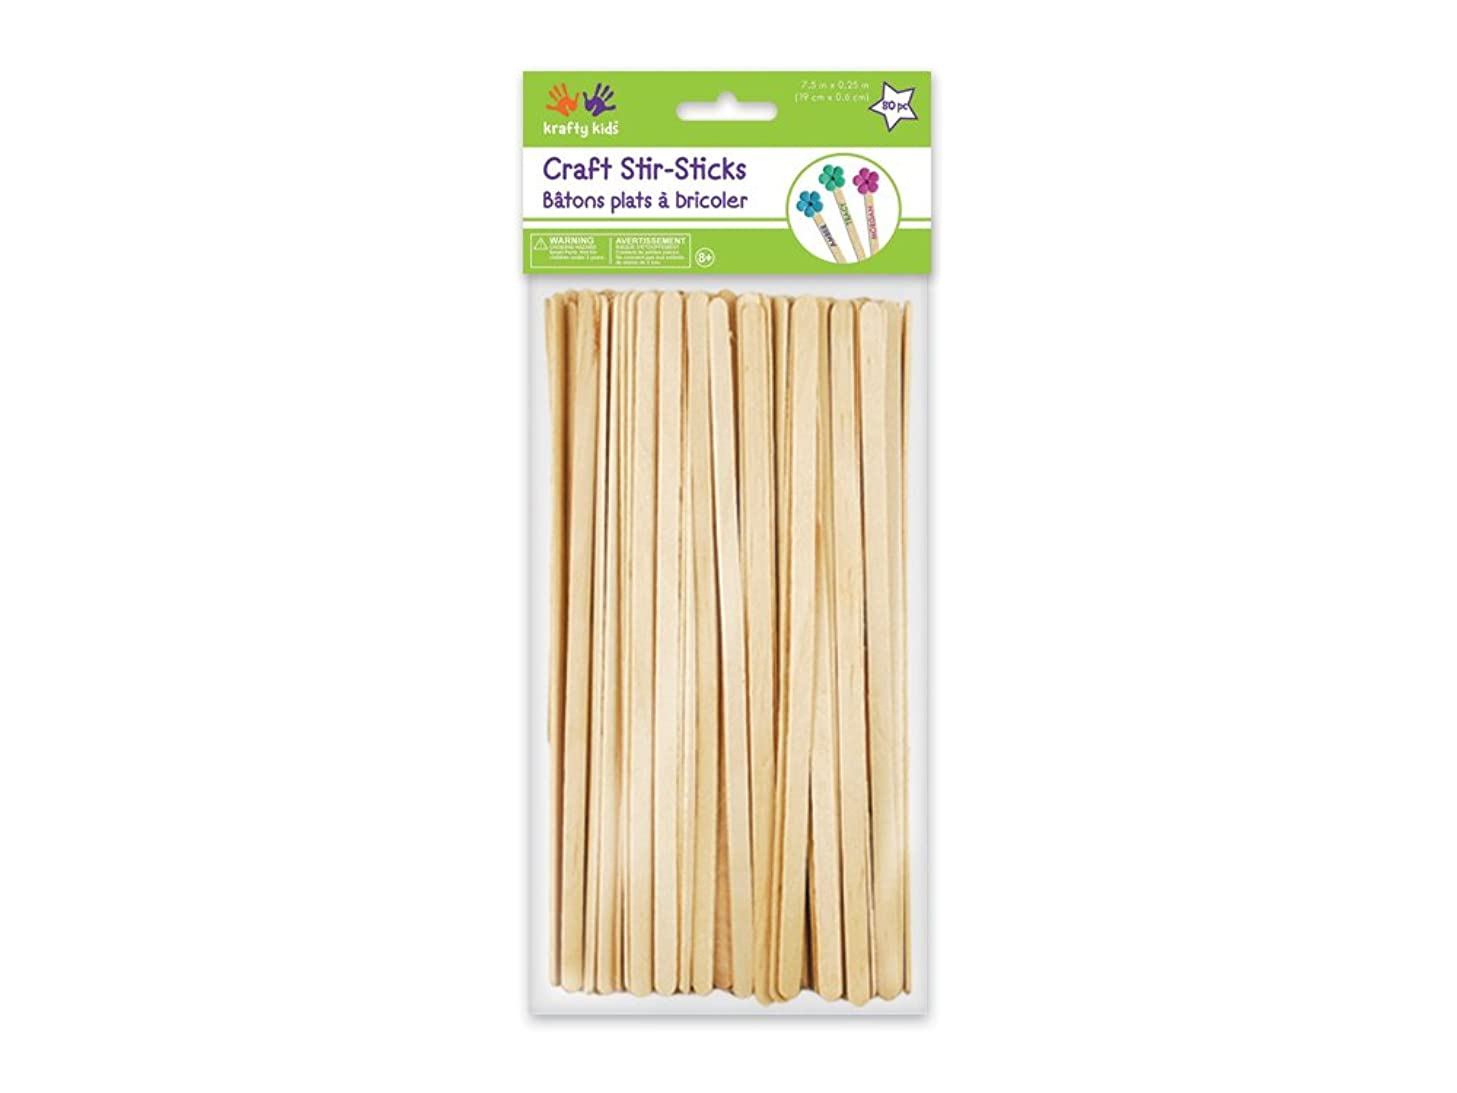 Multicraft Imports Krafty Kids CW520 Craftwood Natural Craft Stir-Sticks, 7.5in by 0.25in, 80-Piece